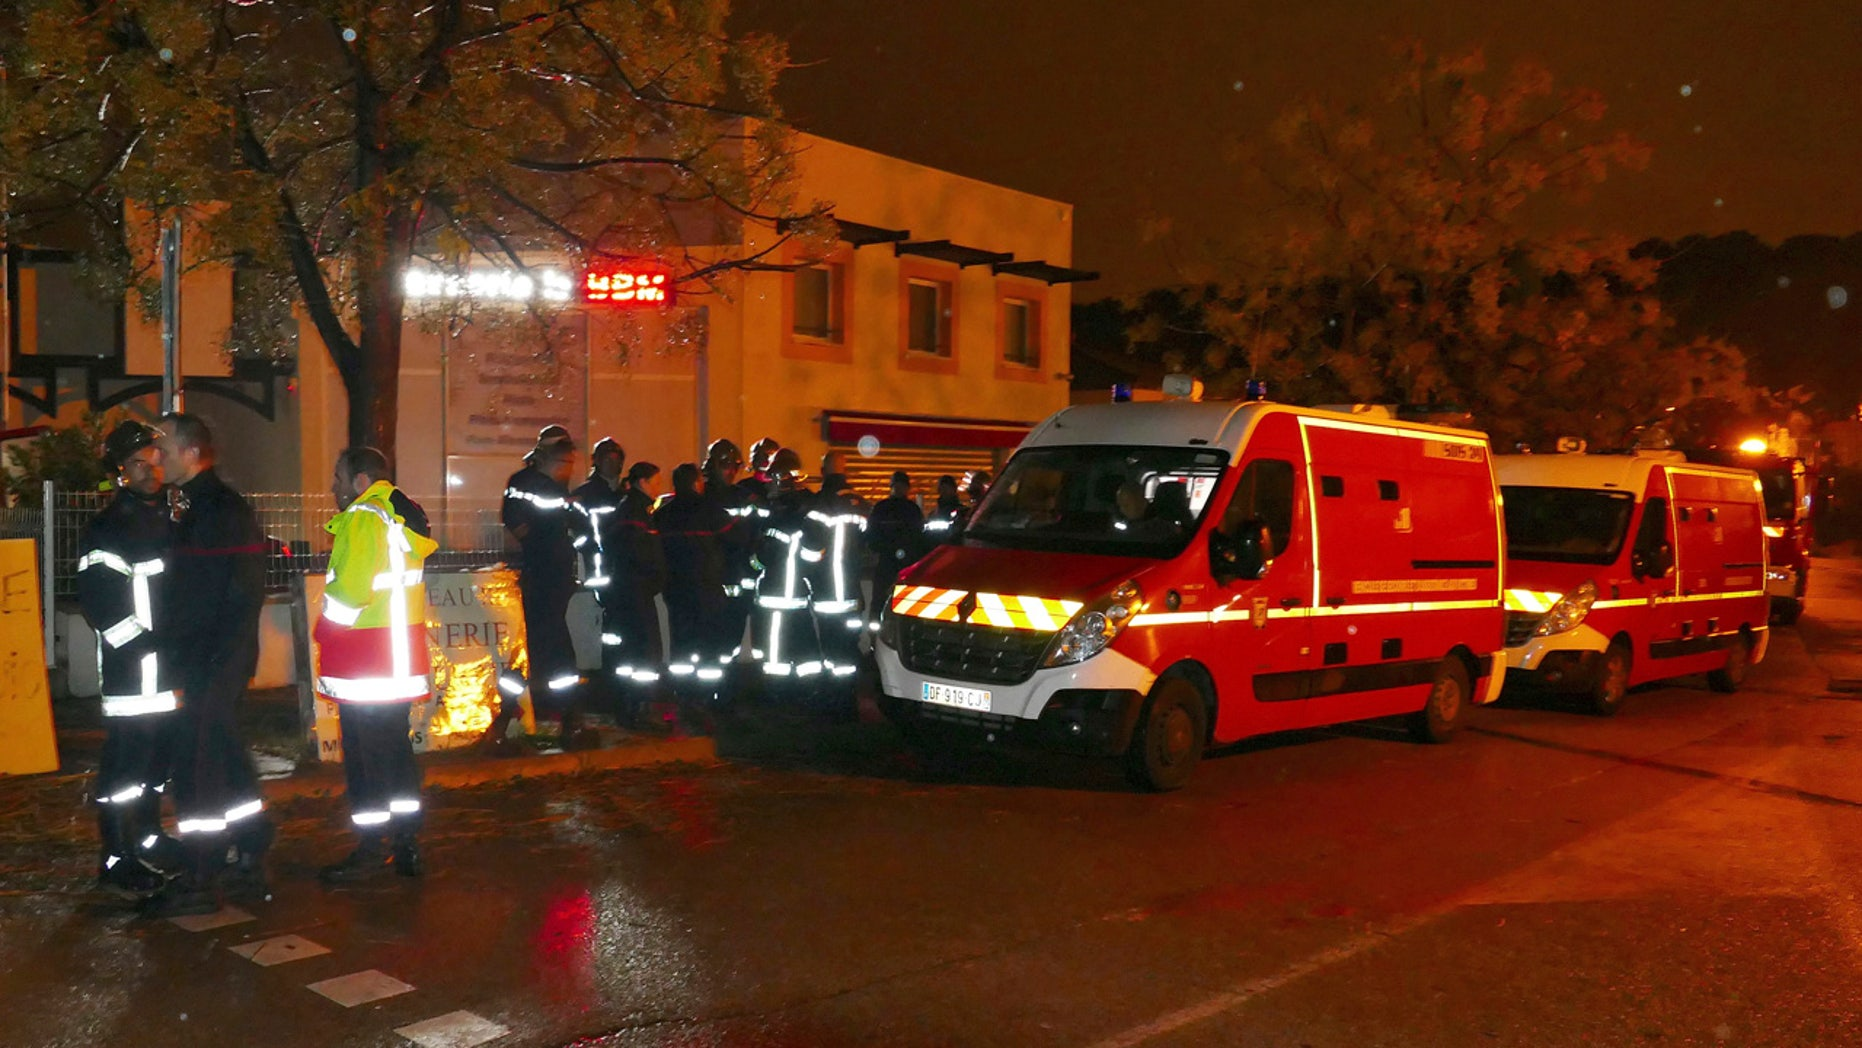 Firefighters and ambulances are seen in the village of Montferrier-sur-Lez, southern France, Friday, Nov. 25, 2016.